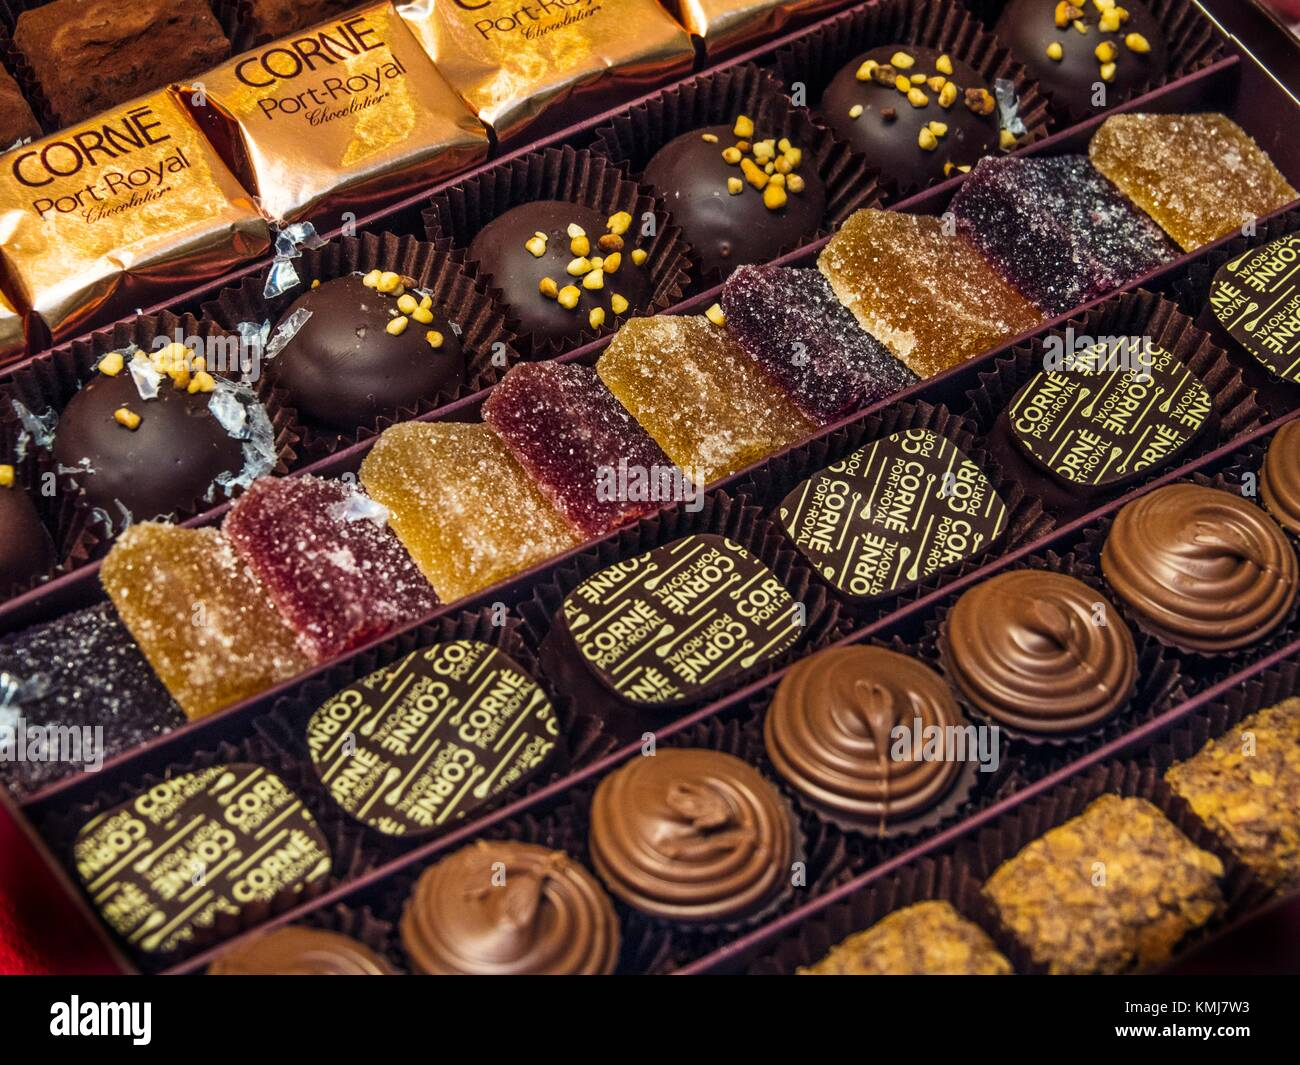 Belgium. Food, the famed belgian chocolates. - Stock Image